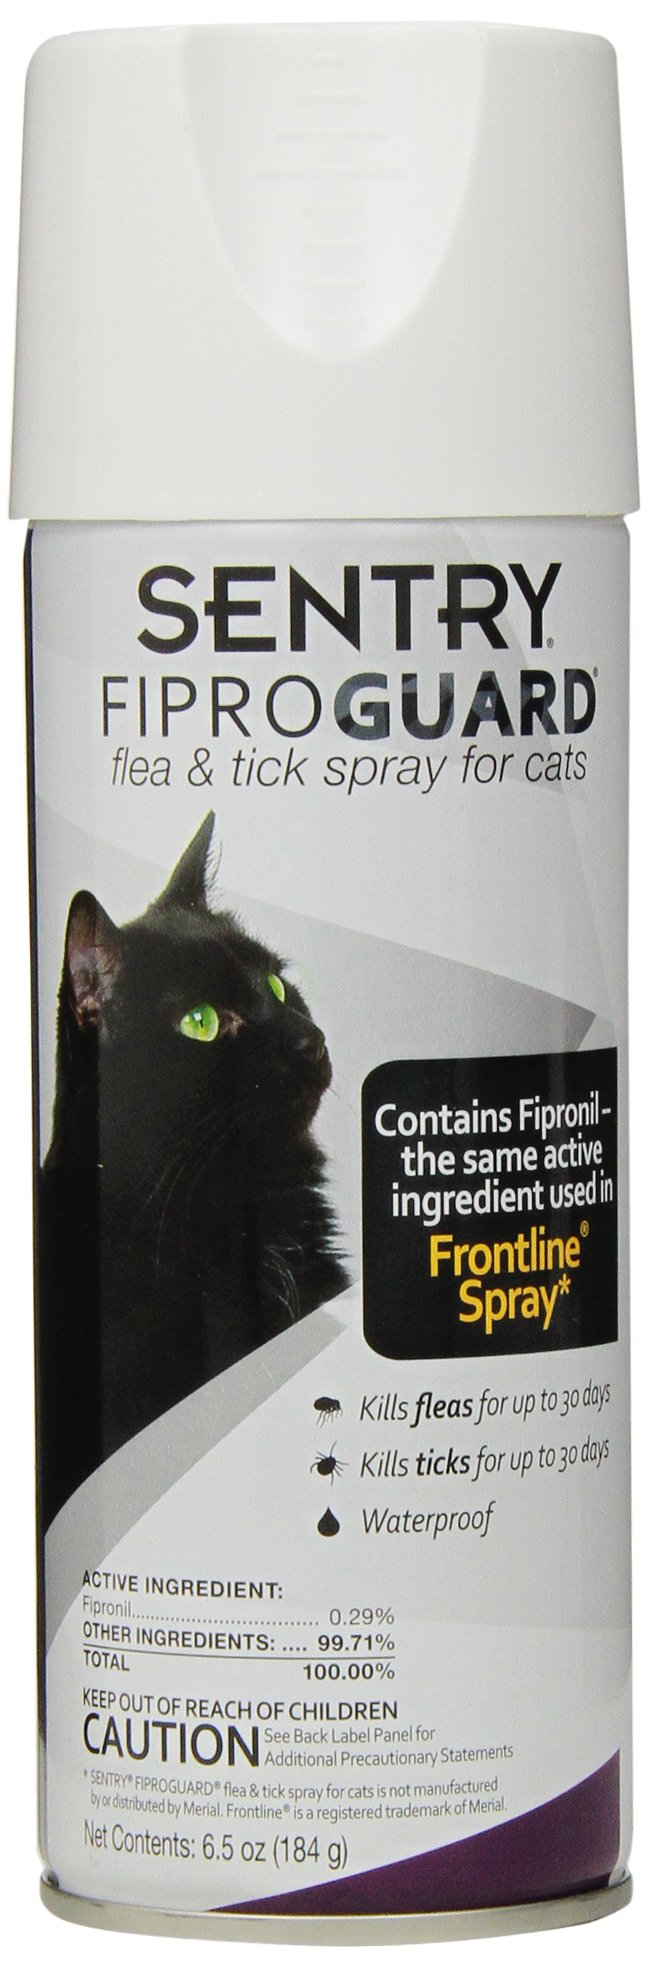 SENTRY Fiproguard Flea & Tick Spray for Cats, 6.5 oz